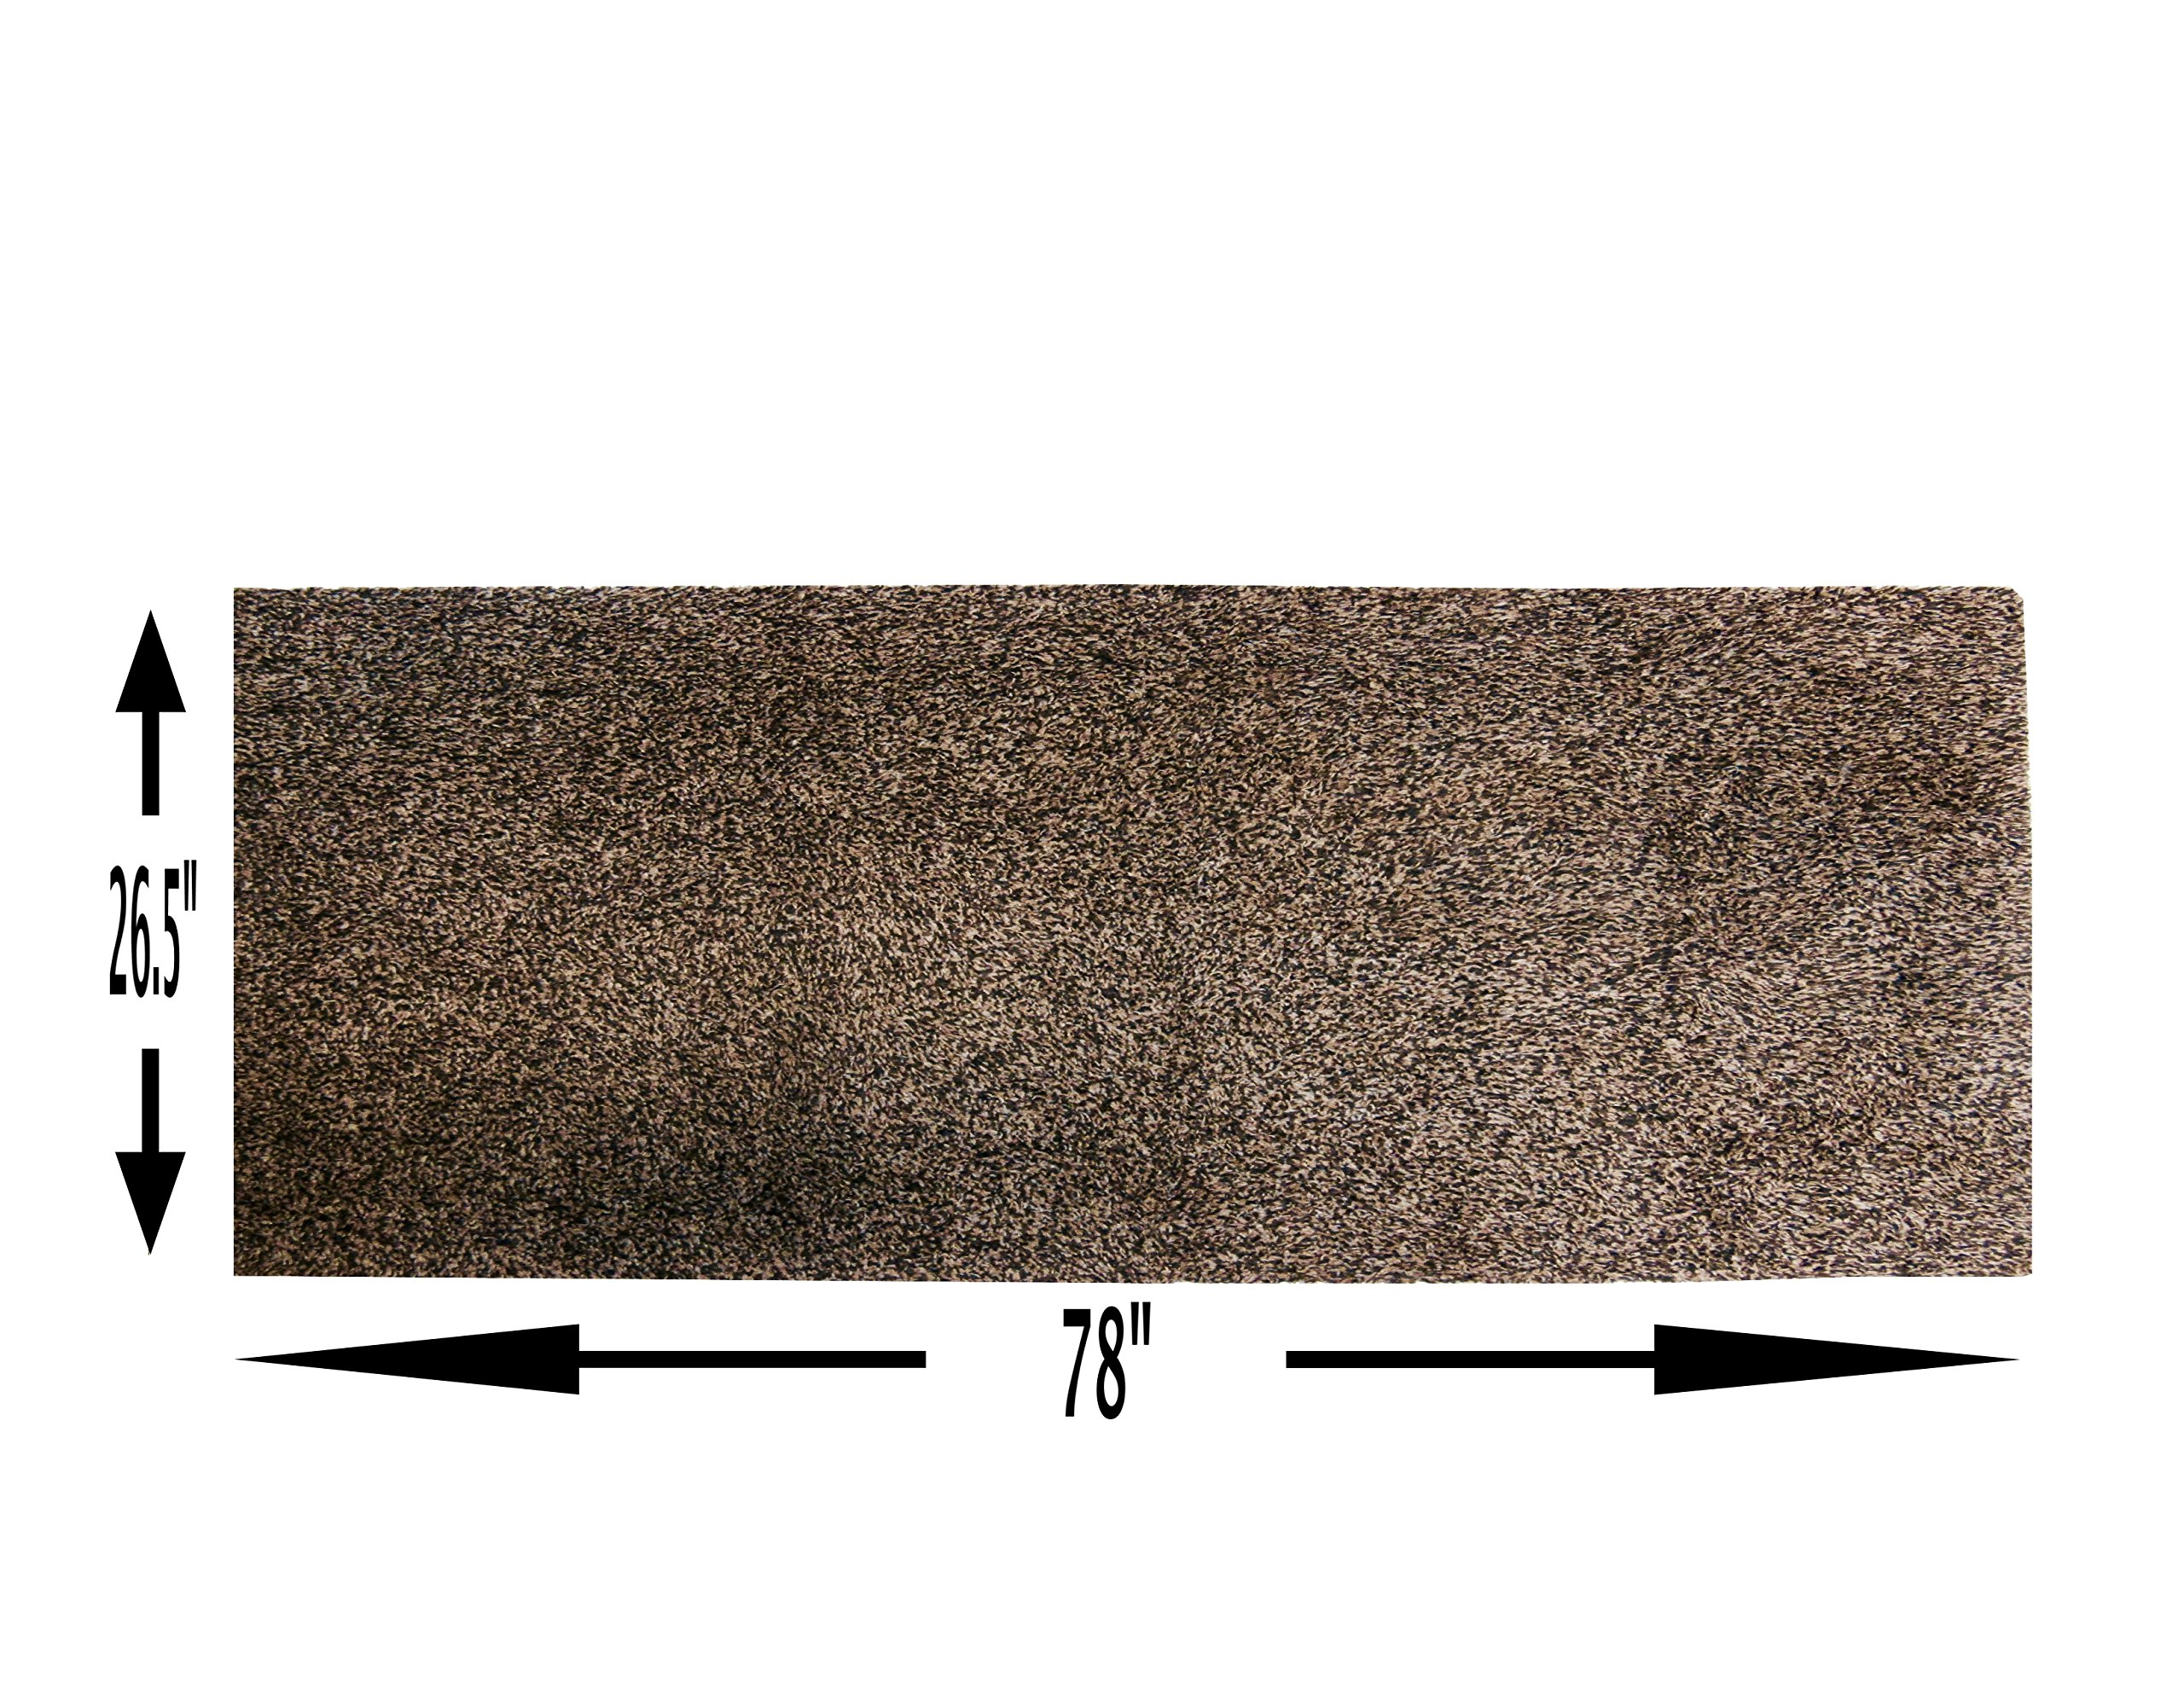 One Step Mud Mat Original Made in England 26.5W x 78L Runner (Brown) Indoor Floor Mat with Non Slip Backing Traps Mud and Dirt Perfect for Pets Excellent for High Traffic Areas by ONE STEP MUD MAT STOPS DIRT AND WATER IN ITS TRACKS! (Image #2)